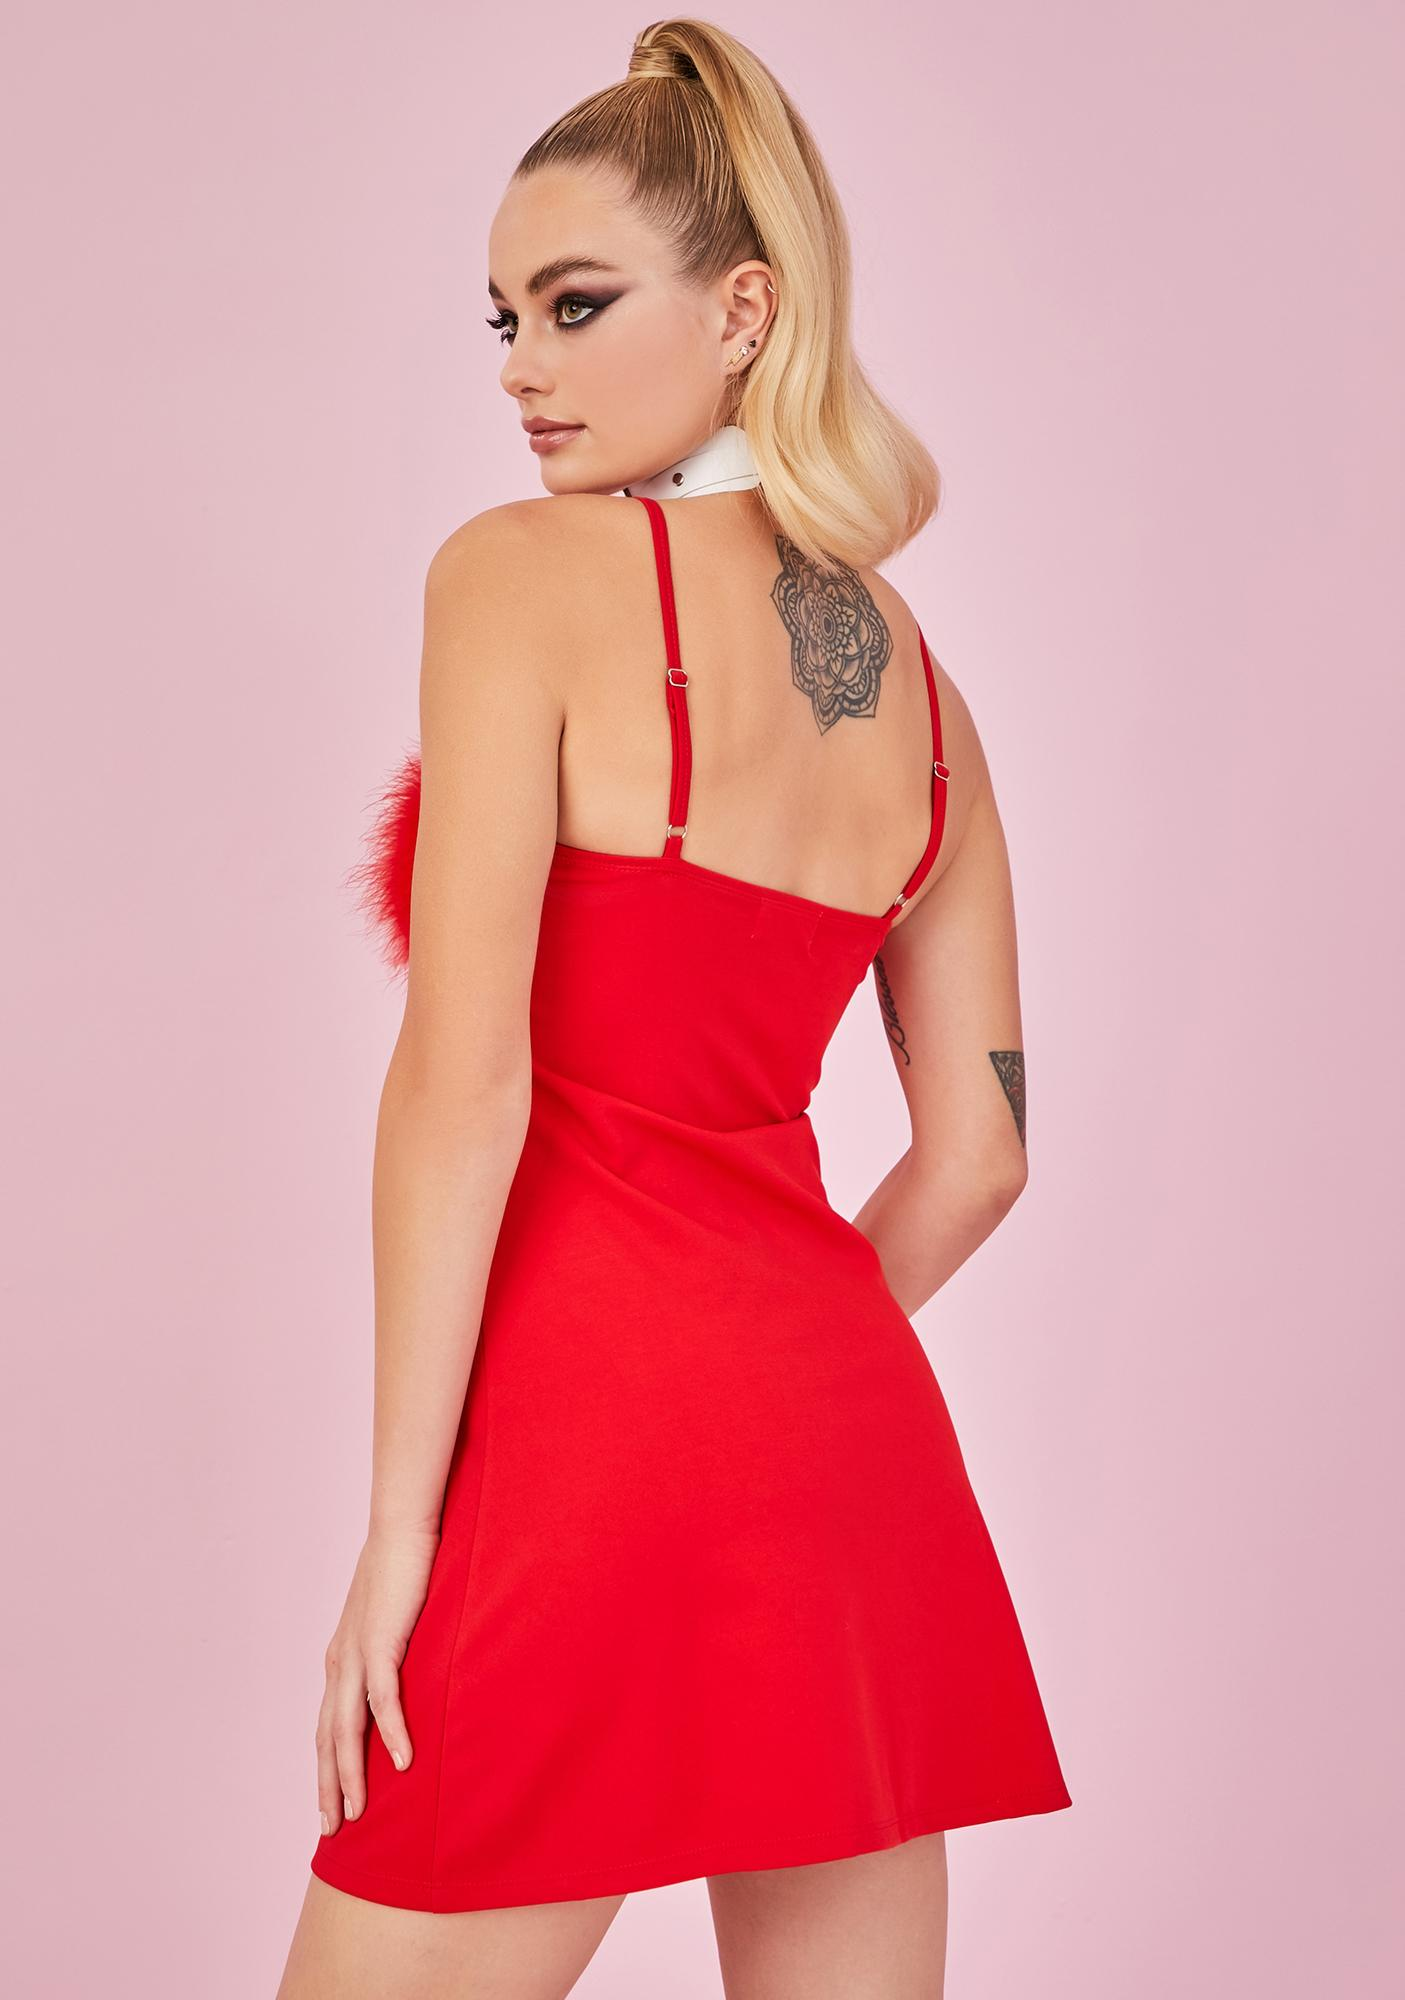 Sugar Thrillz Scarlet Flirty N' Thriving Marabou Dress